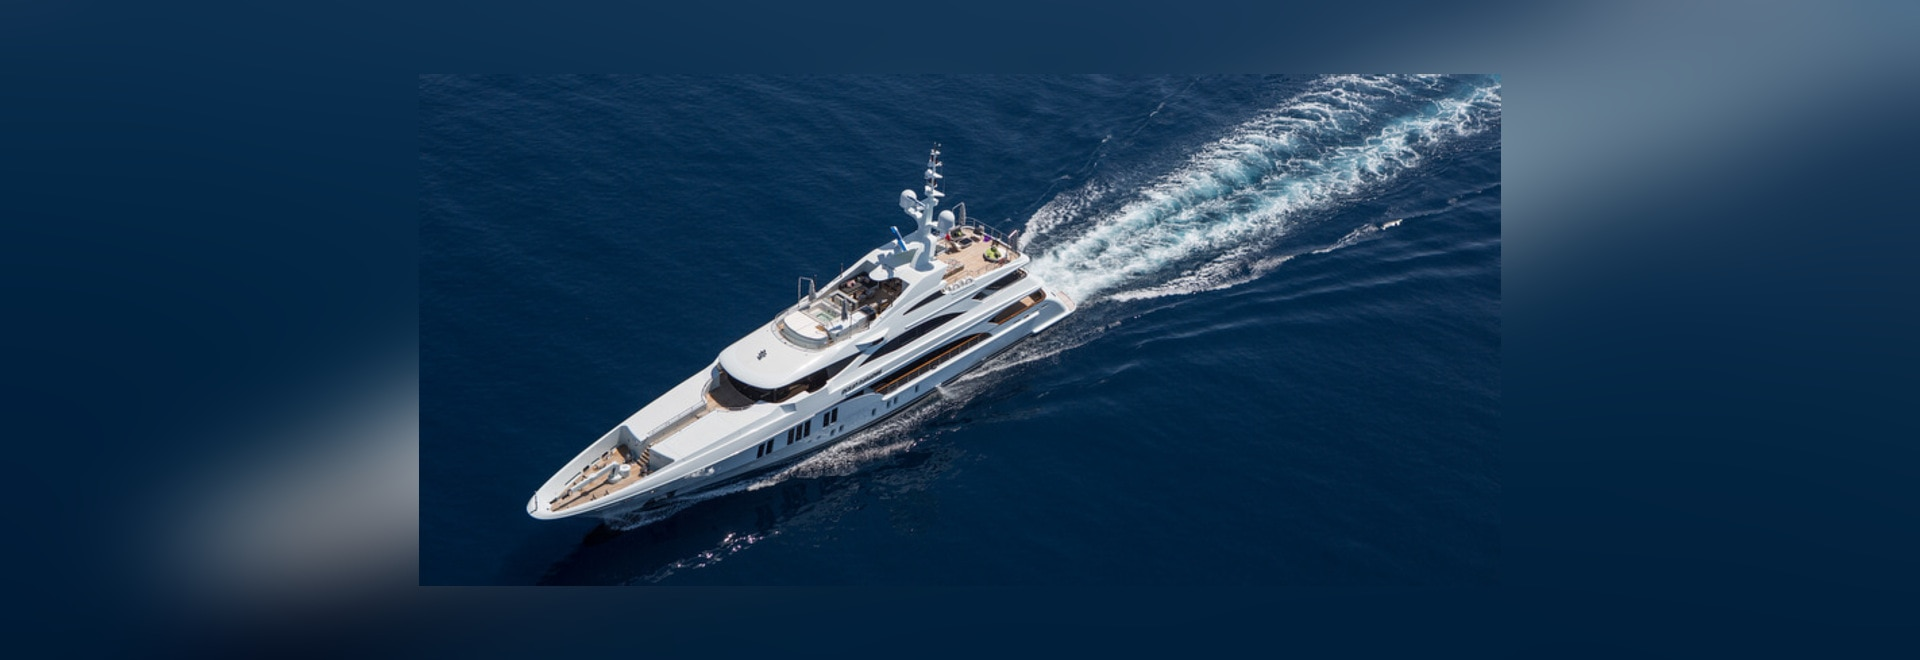 55m Benetti superyacht Ocean Paradise to be displayed as largest yacht at Cannes Yachting Festival 2014